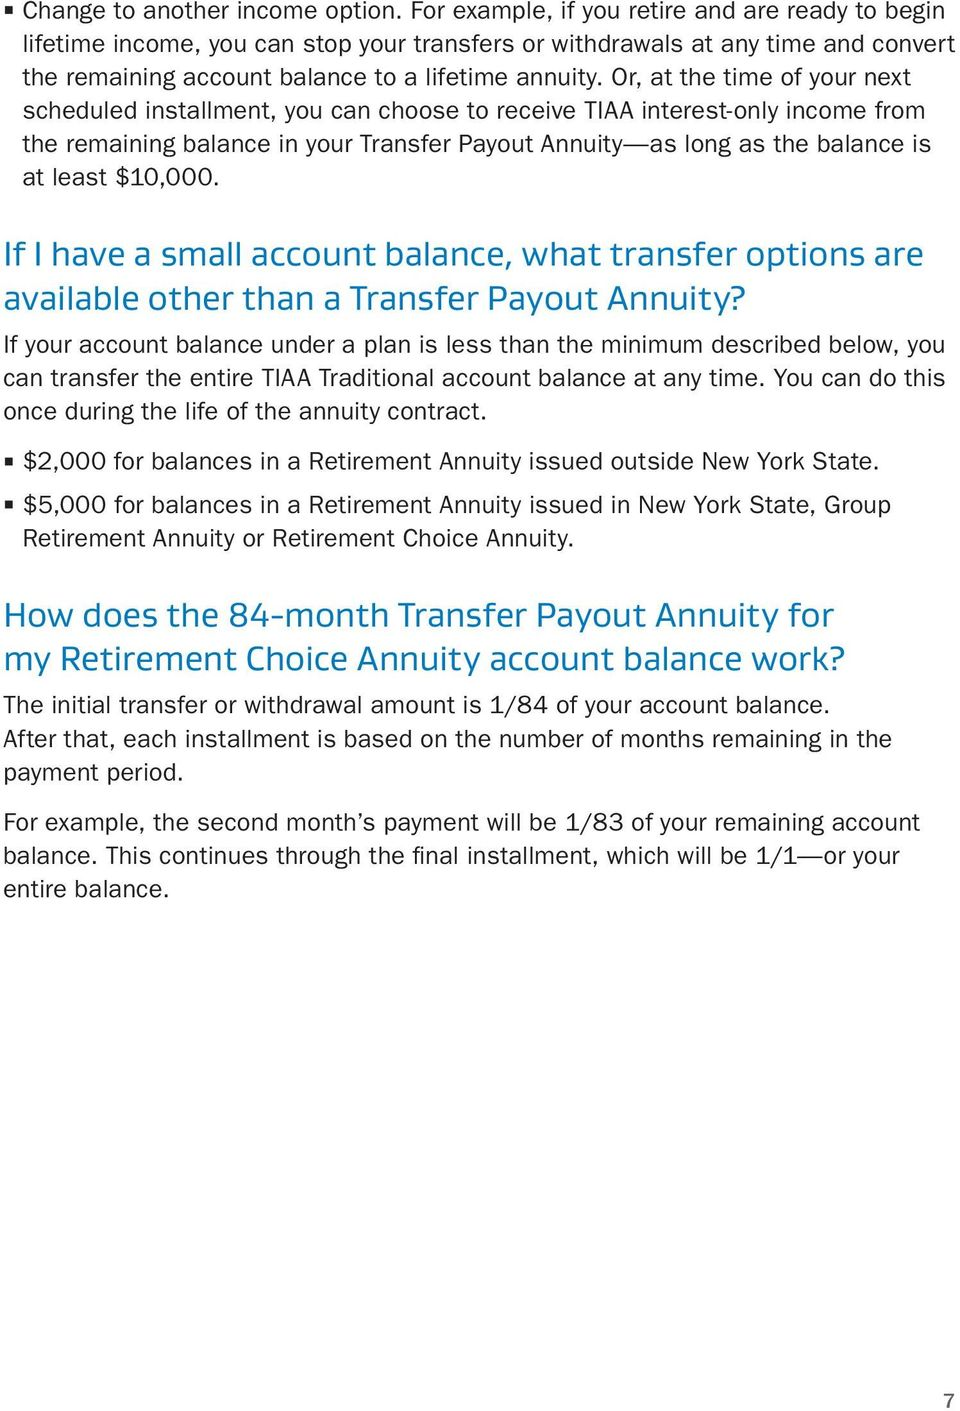 Or, at the time of your next scheduled installment, you can choose to receive TIAA interest-only income from the remaining balance in your Transfer Payout Annuity as long as the balance is at least